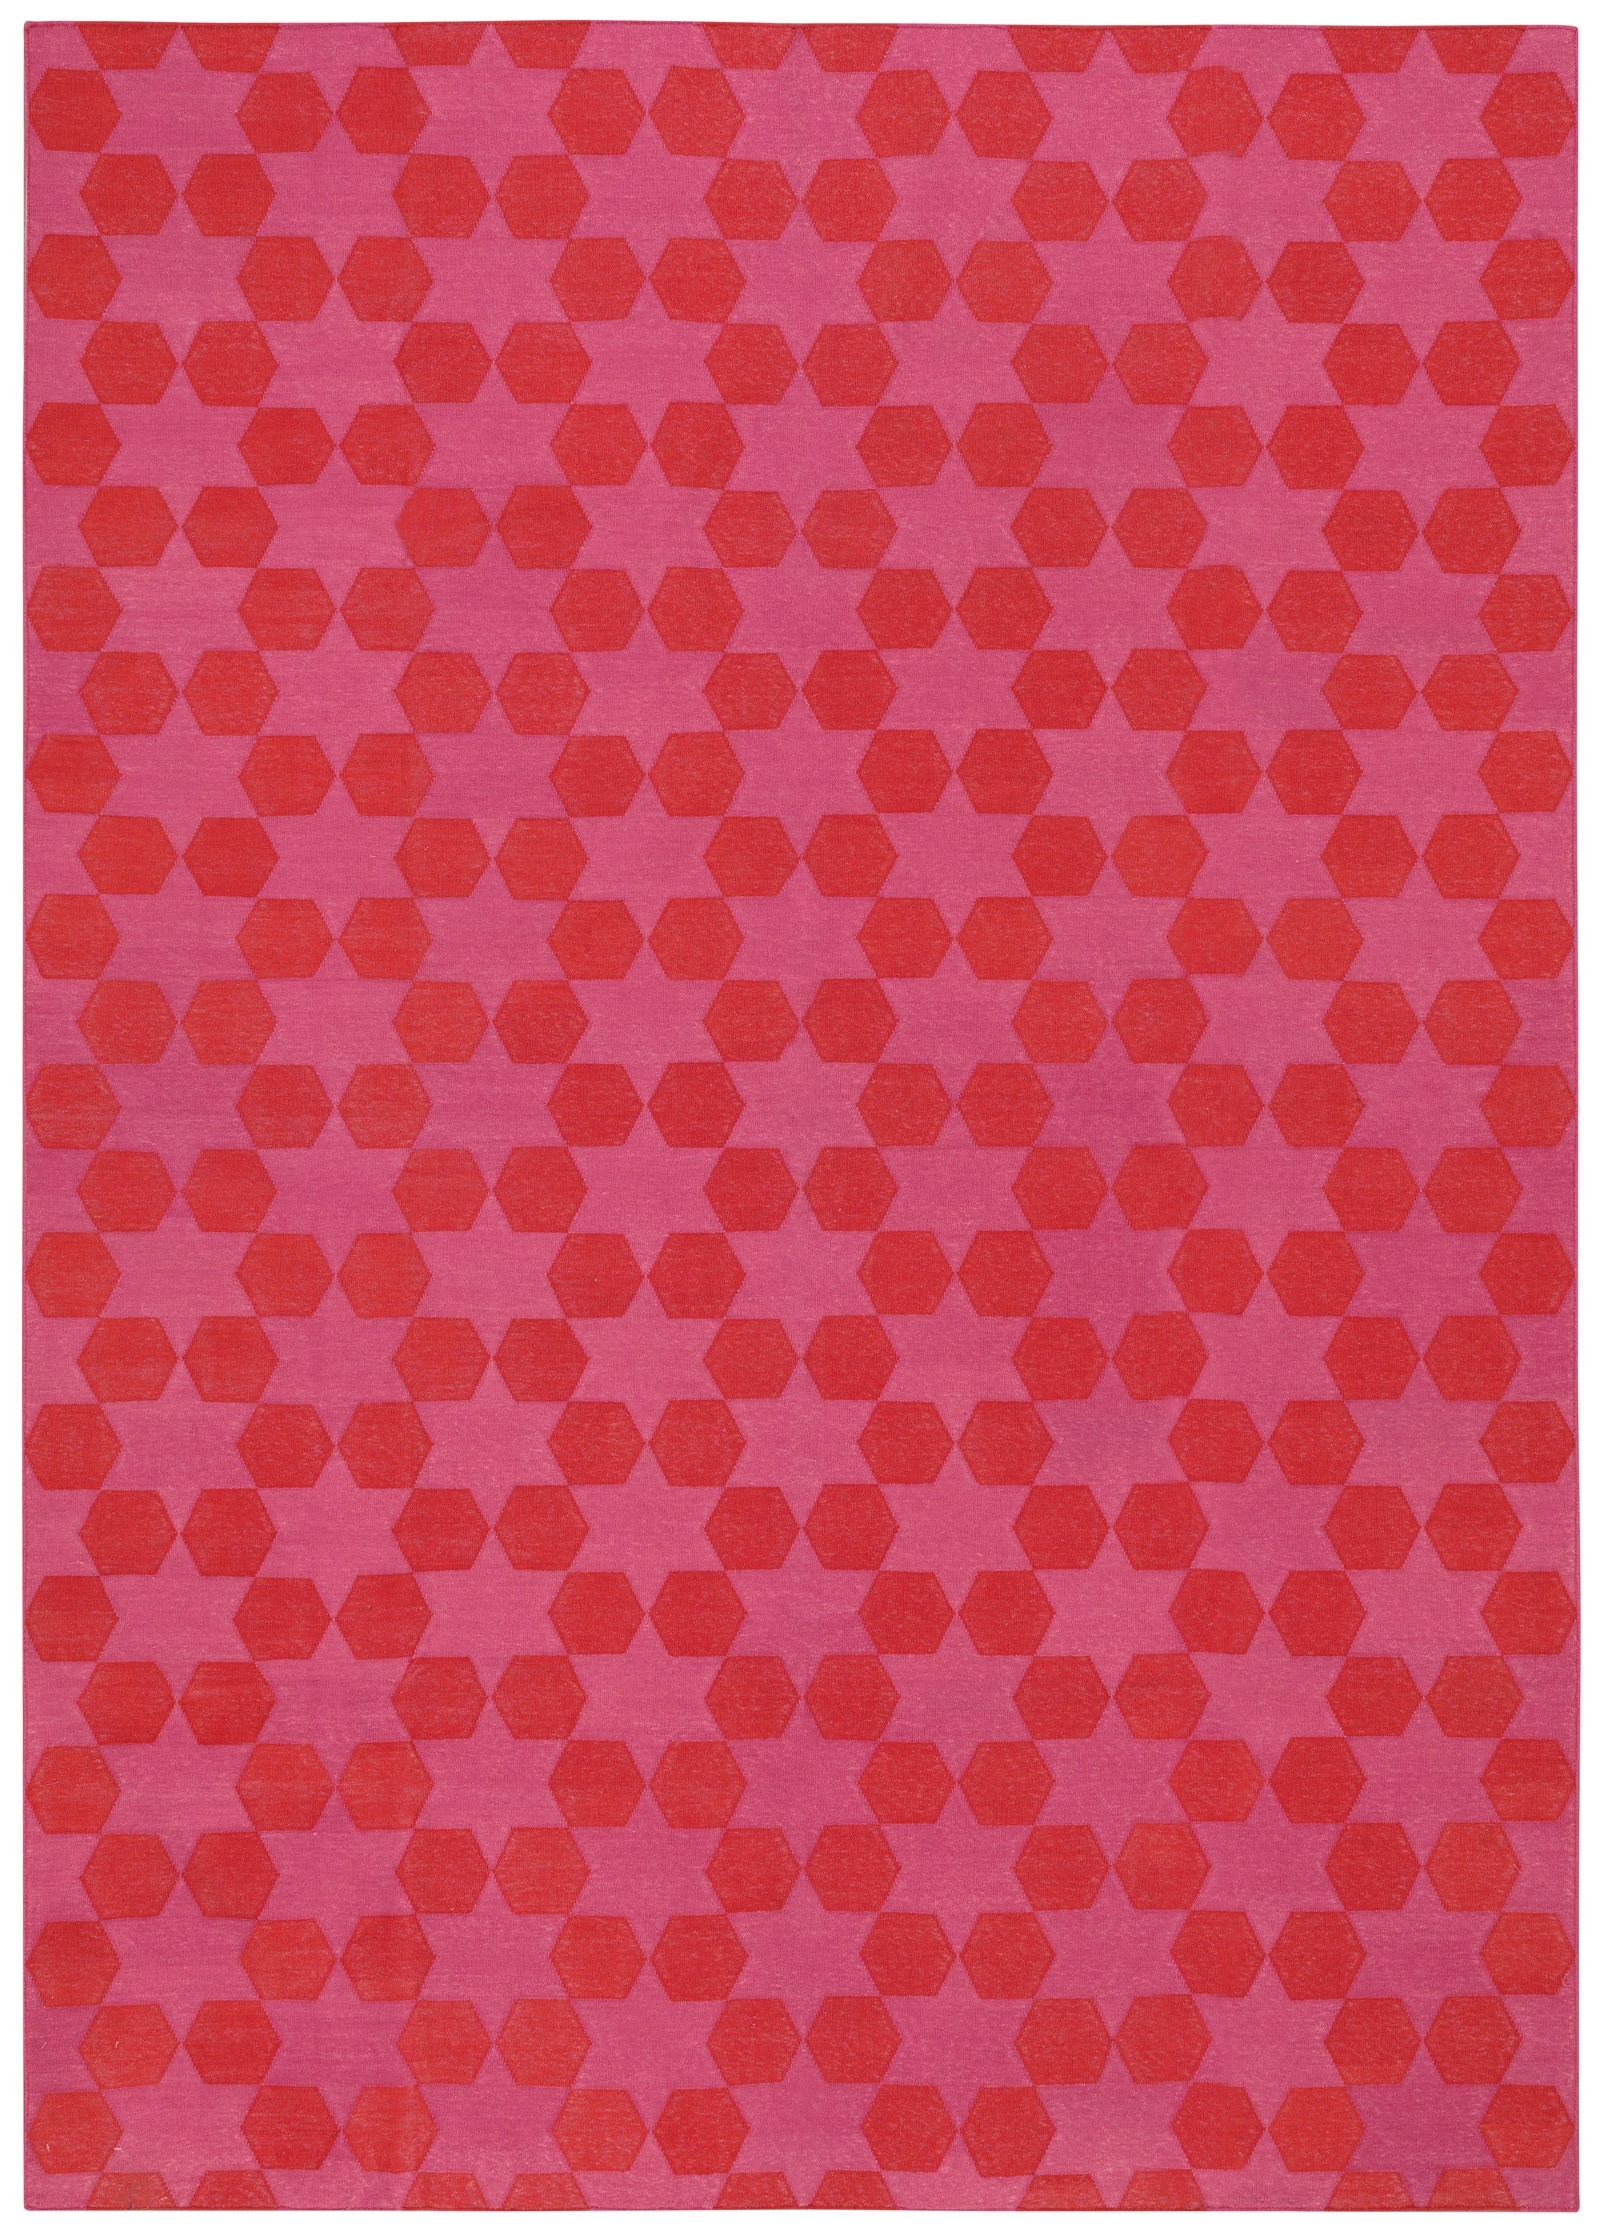 Jaipur Pink The Rug Company The Rug Company In Pink Pattern Rugs (Image 11 of 15)